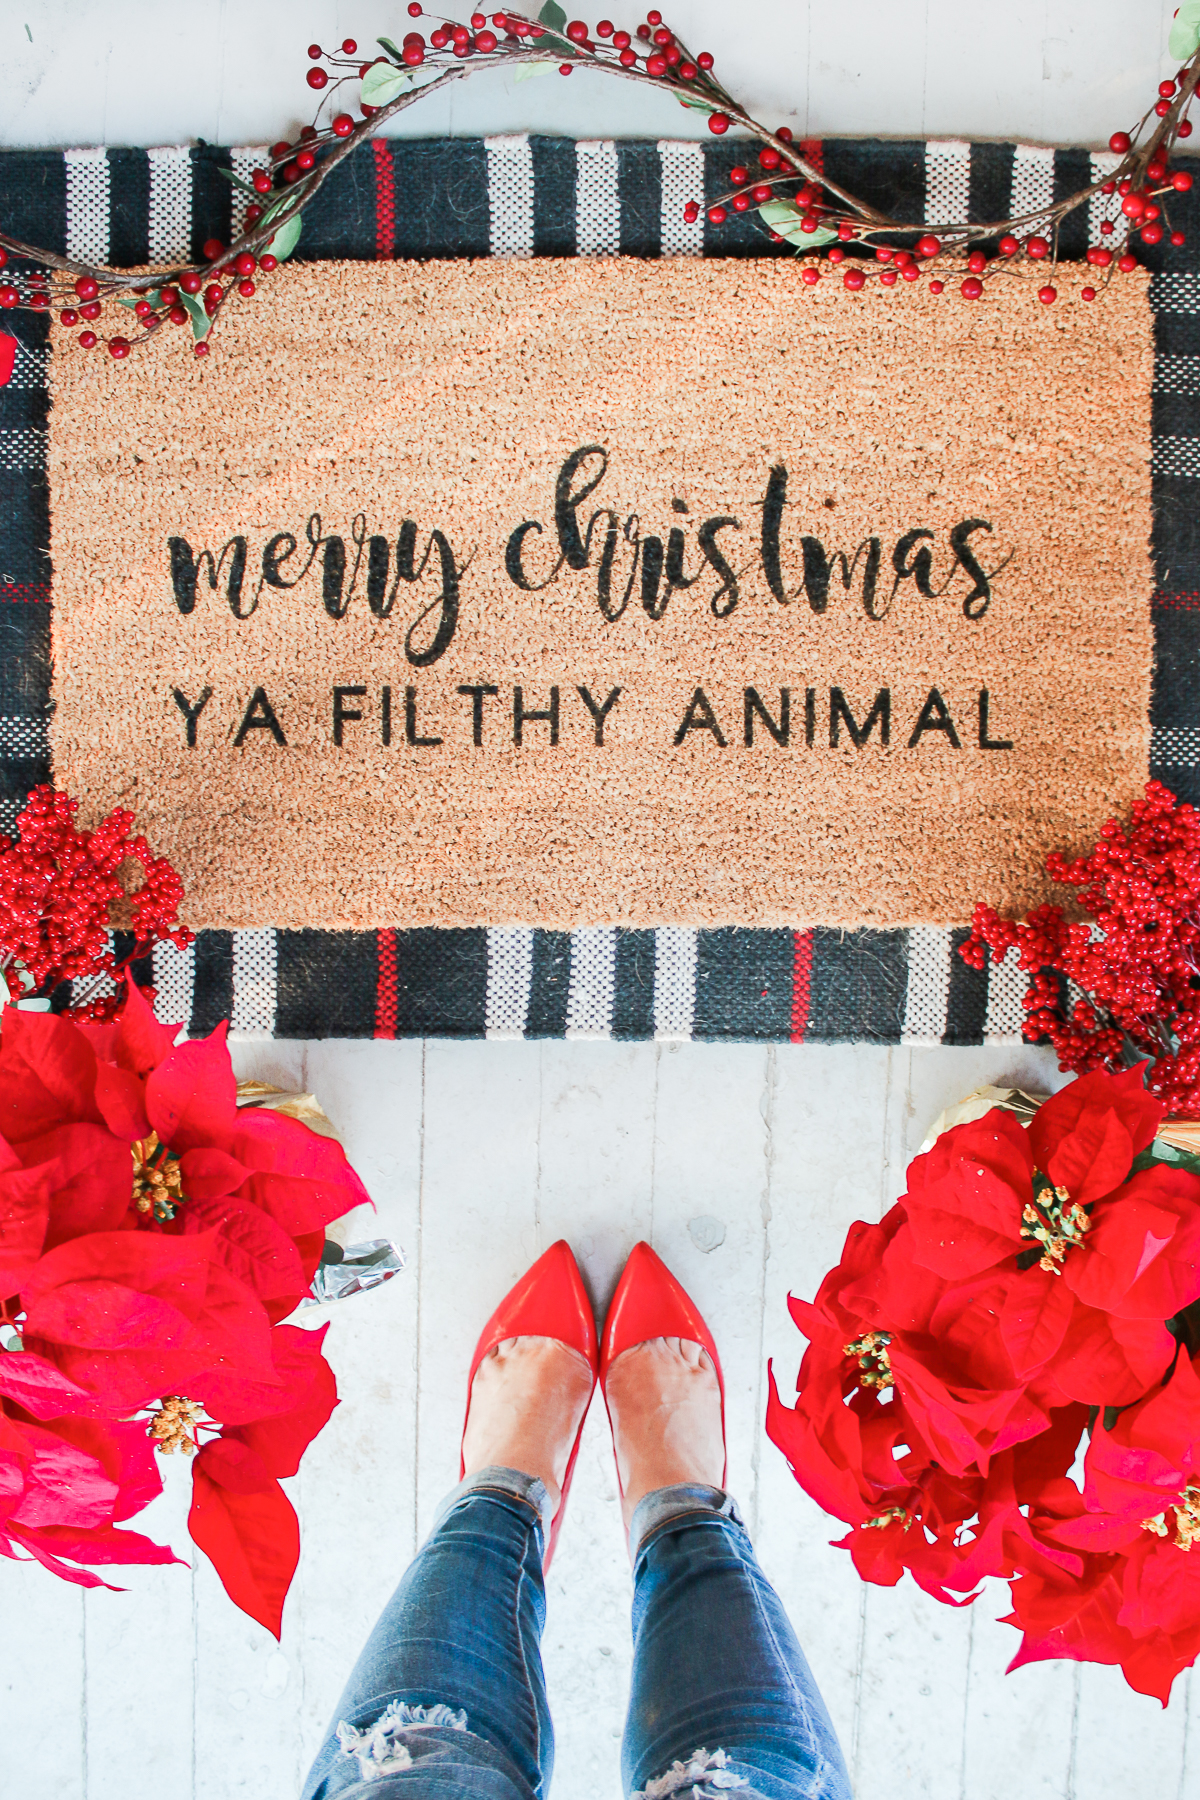 """Merry Christmas Ya Filthy Animal"" DIY Painted Doormat by southern lifestyle blogger Stephanie Ziajka from Diary of a Debutante, DIY doormat stencil with Cricut Explore Air 2, Cricut doormat tutorial, DIY outdoor mat, paint your own doormat tutorial, paint doormat"